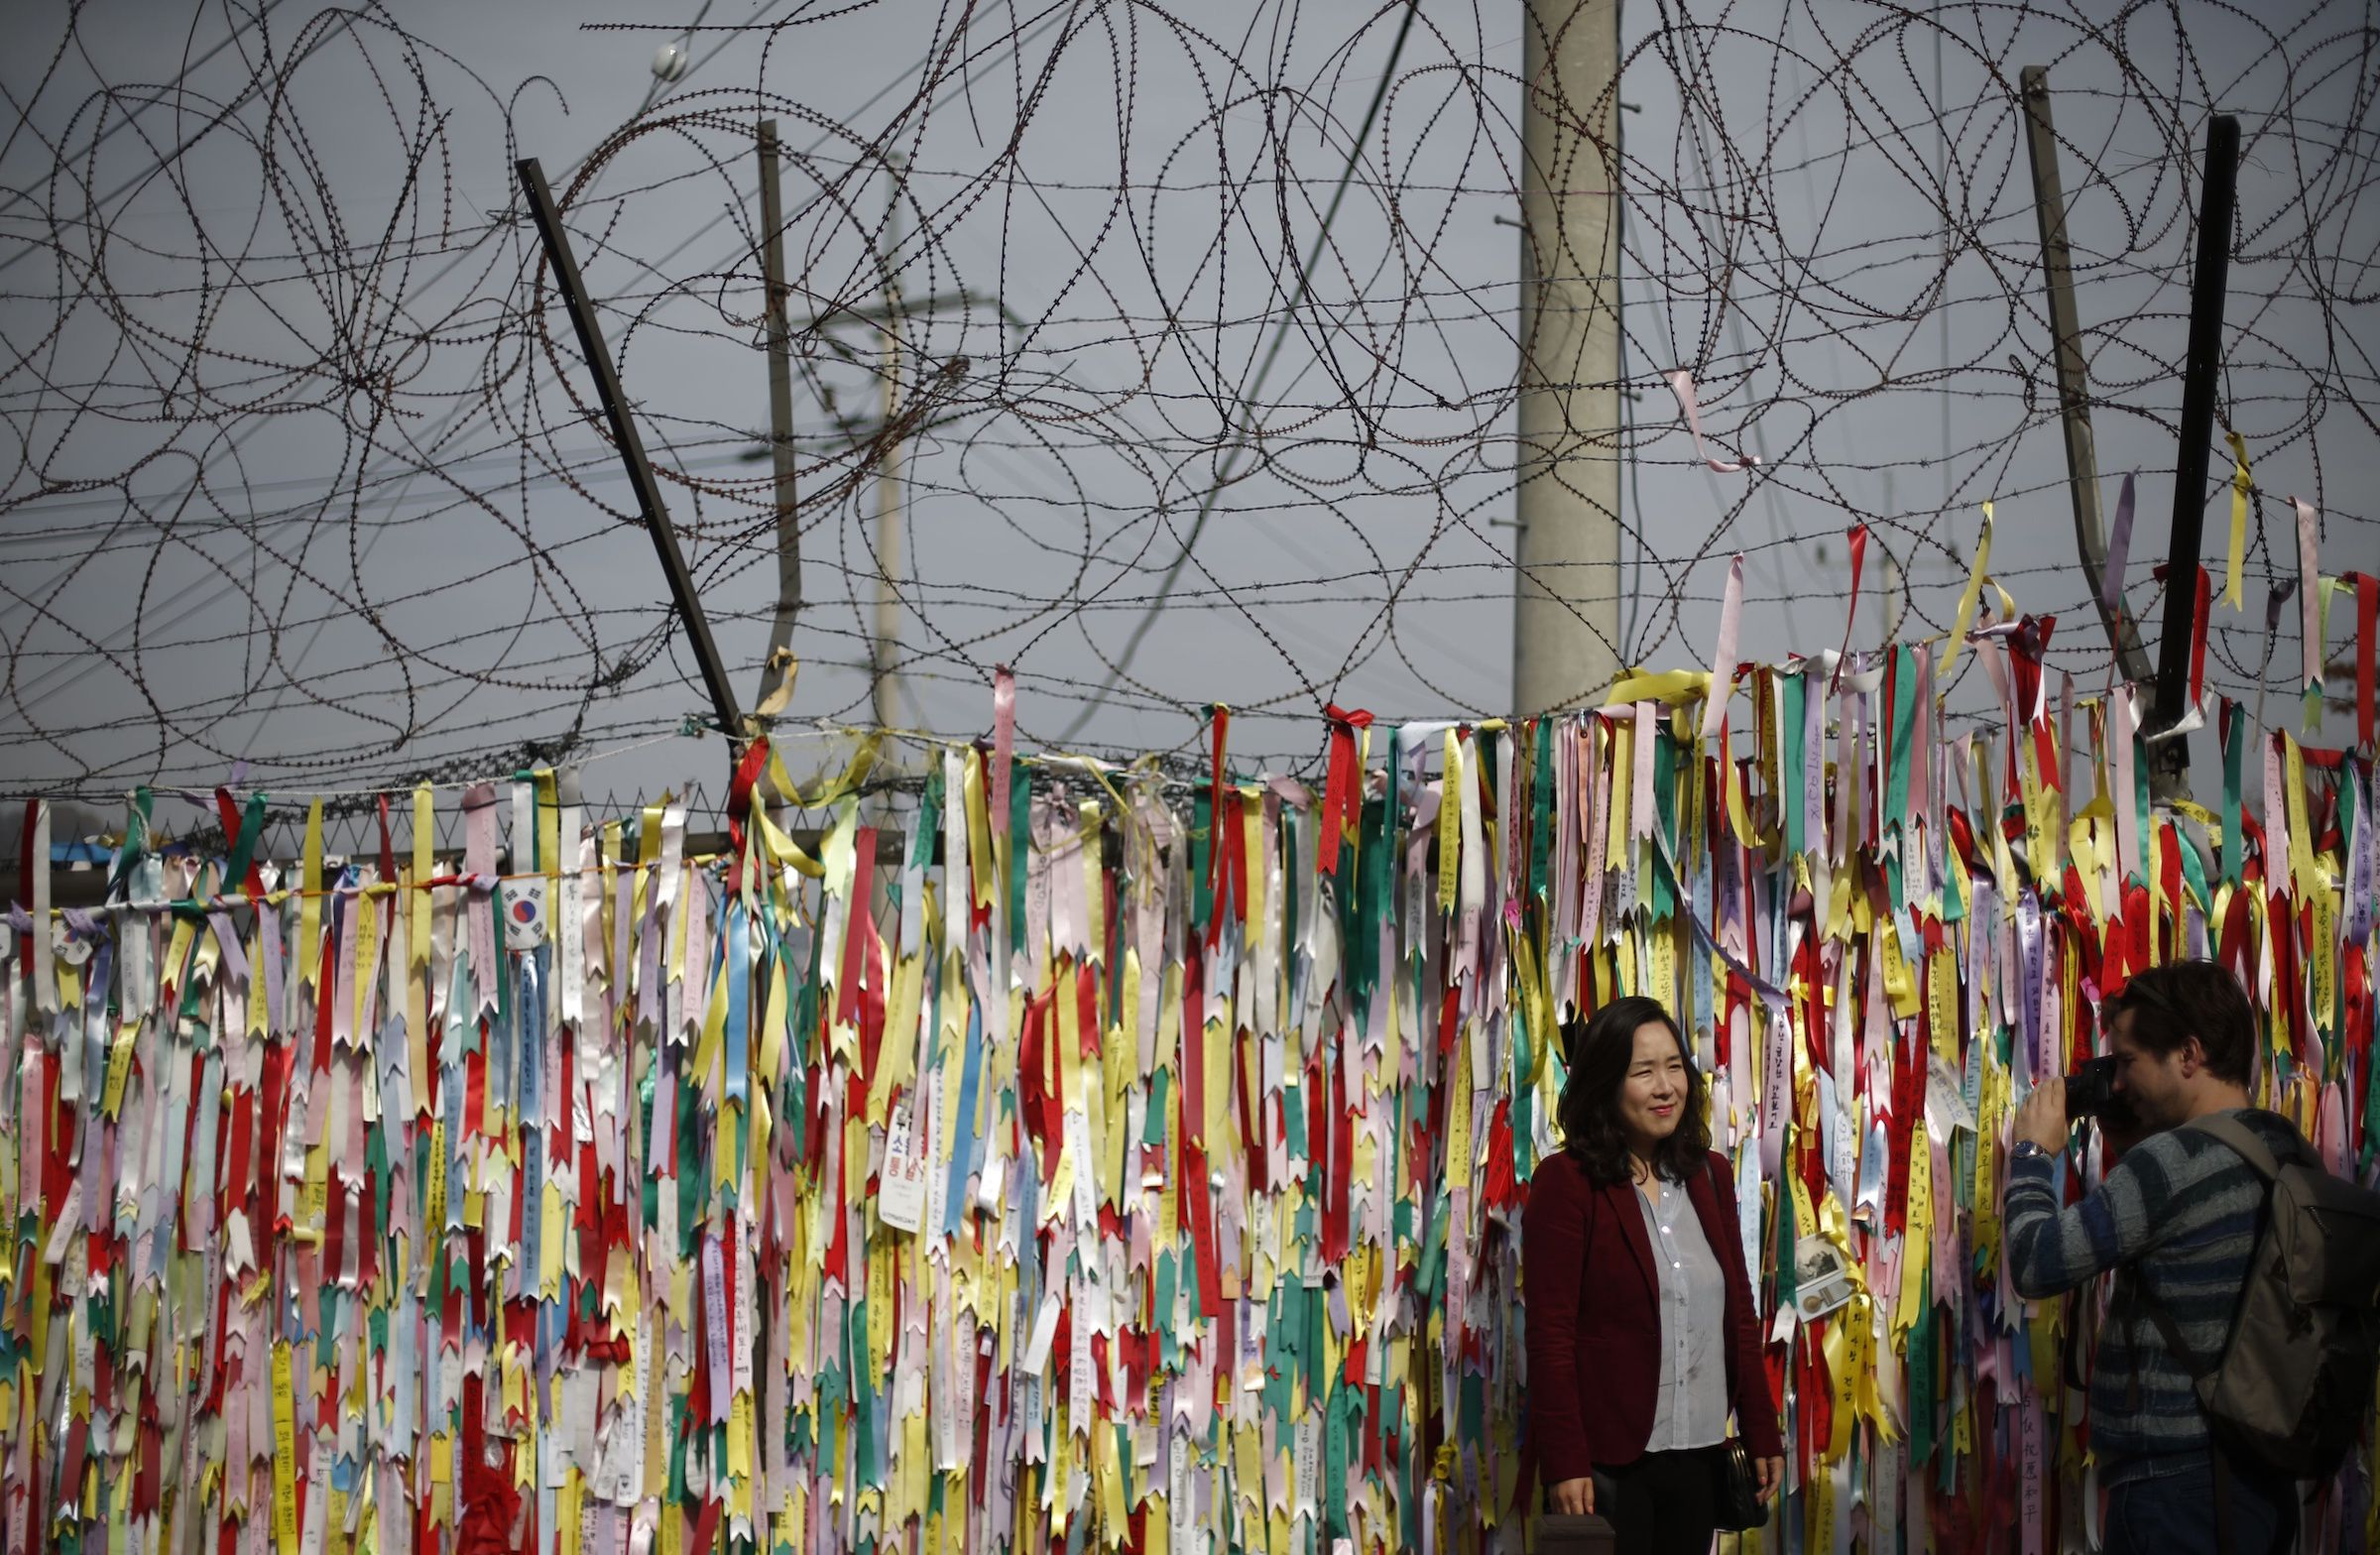 A barbed wire fence decorated with South Korean national flags is pictured near the demilitarized zone which separates North and South Korea in Paju October 31, 2014. On the 25th anniversary of the fall of the Berlin Wall, there are still barriers separating communities around the world, from the barbed wire fence dividing the two Koreas, the fence around the Spanish enclave of Melilla, to the sectarian Peace Wall in Belfast, the Israel-Gaza barrier and the border separating Mexico from the United States. Picture taken October 31, 2014. REUTERS/Kim Hong-Ji (SOUTH KOREA - Tags: ANNIVERSARY CIVIL UNREST POLITICS SOCIETY) ATTENTION EDITORS: PICTURE 19 OF 28 FOR WIDER IMAGE PACKAGE 'THE WALLS THAT DIVIDE' TO FIND ALL IMAGES SEARCH 'WALLS DIVIDE' - RTR4D2WC